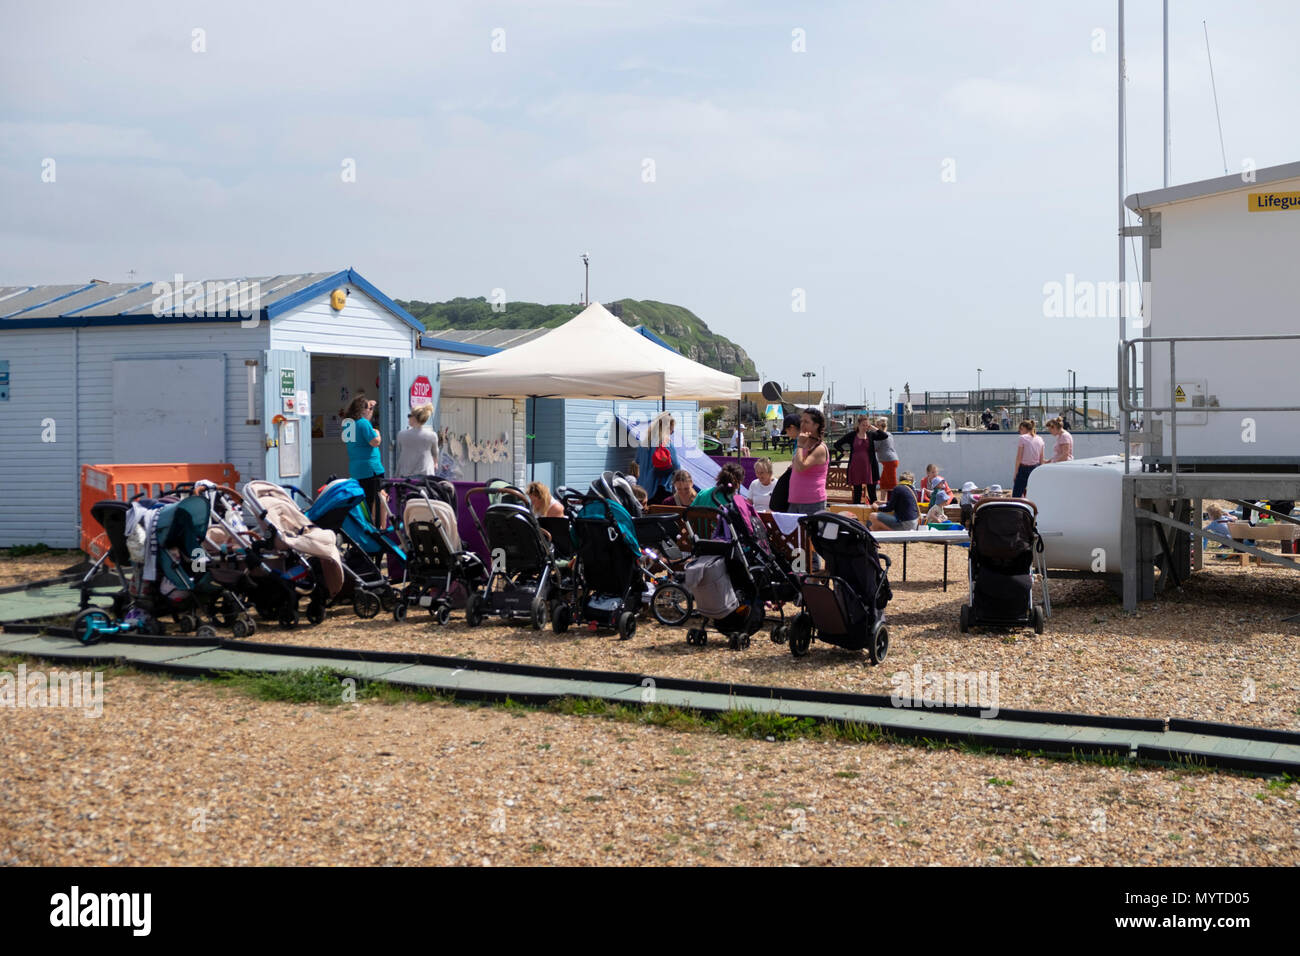 Hastings, East Sussex, UK. 8th Jun, 2018. UK Weather: Sunny but windy in Hastings this morning. This mum and baby group line up their pushchairs as they let the toddlers play on the sand. © Paul Lawrenson 2018, Photo Credit: Paul Lawrenson / Alamy Live News - Stock Image